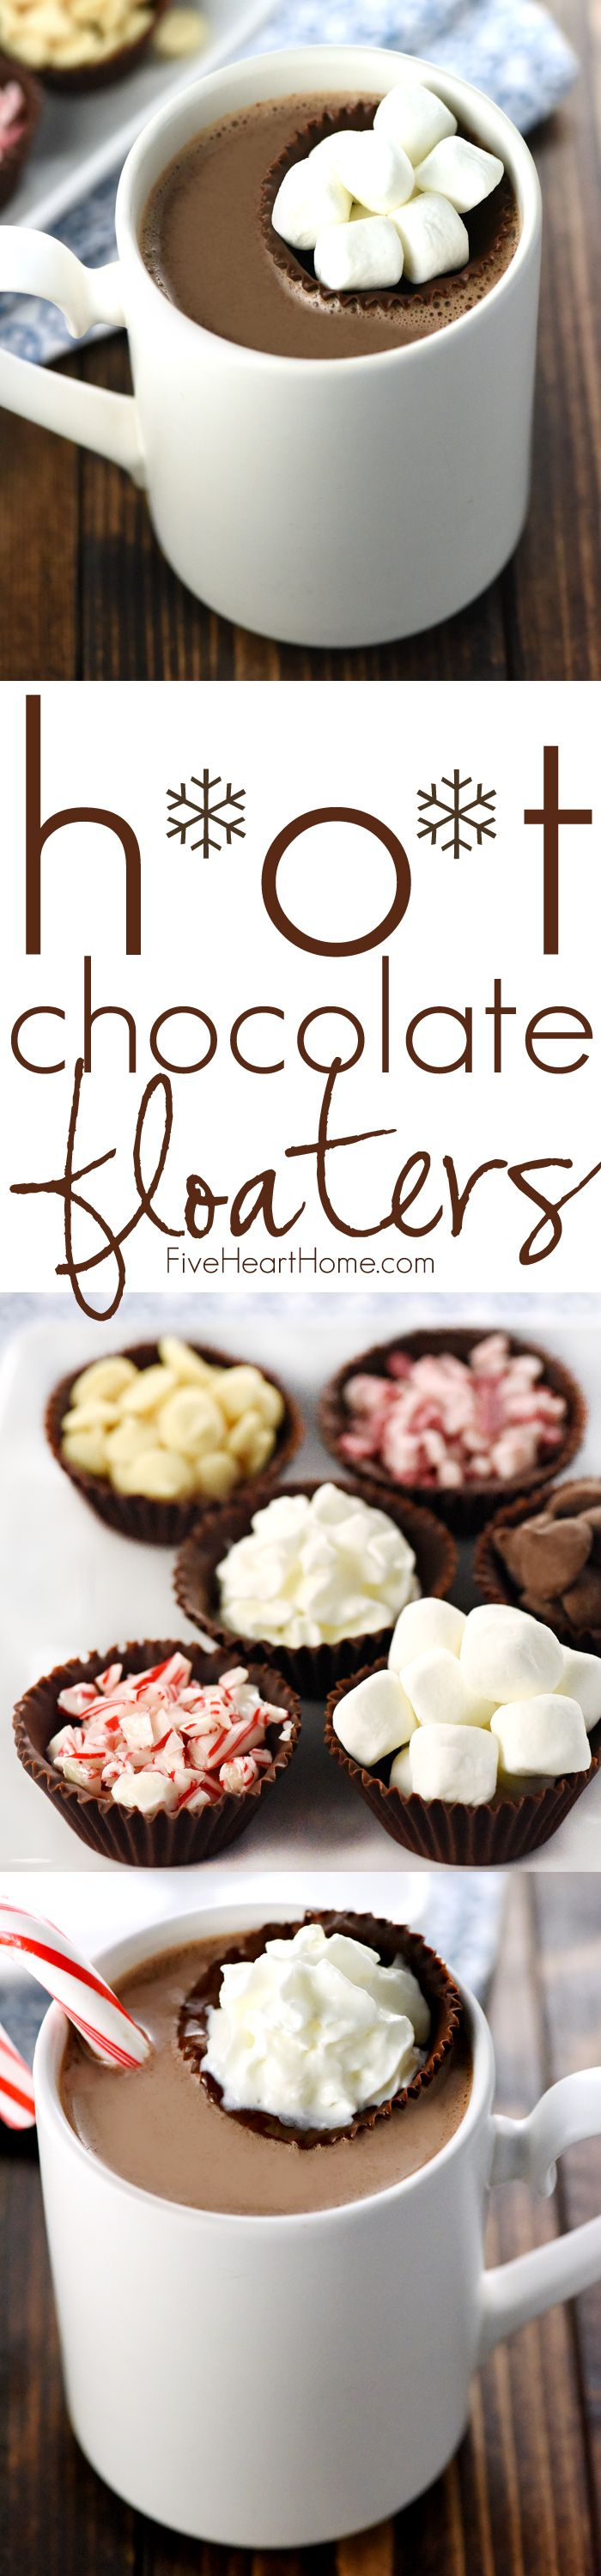 Hot Chocolate Floaters Little Cups Of Chocolate Make Fun And Tasty Receptacles For Marshmallows